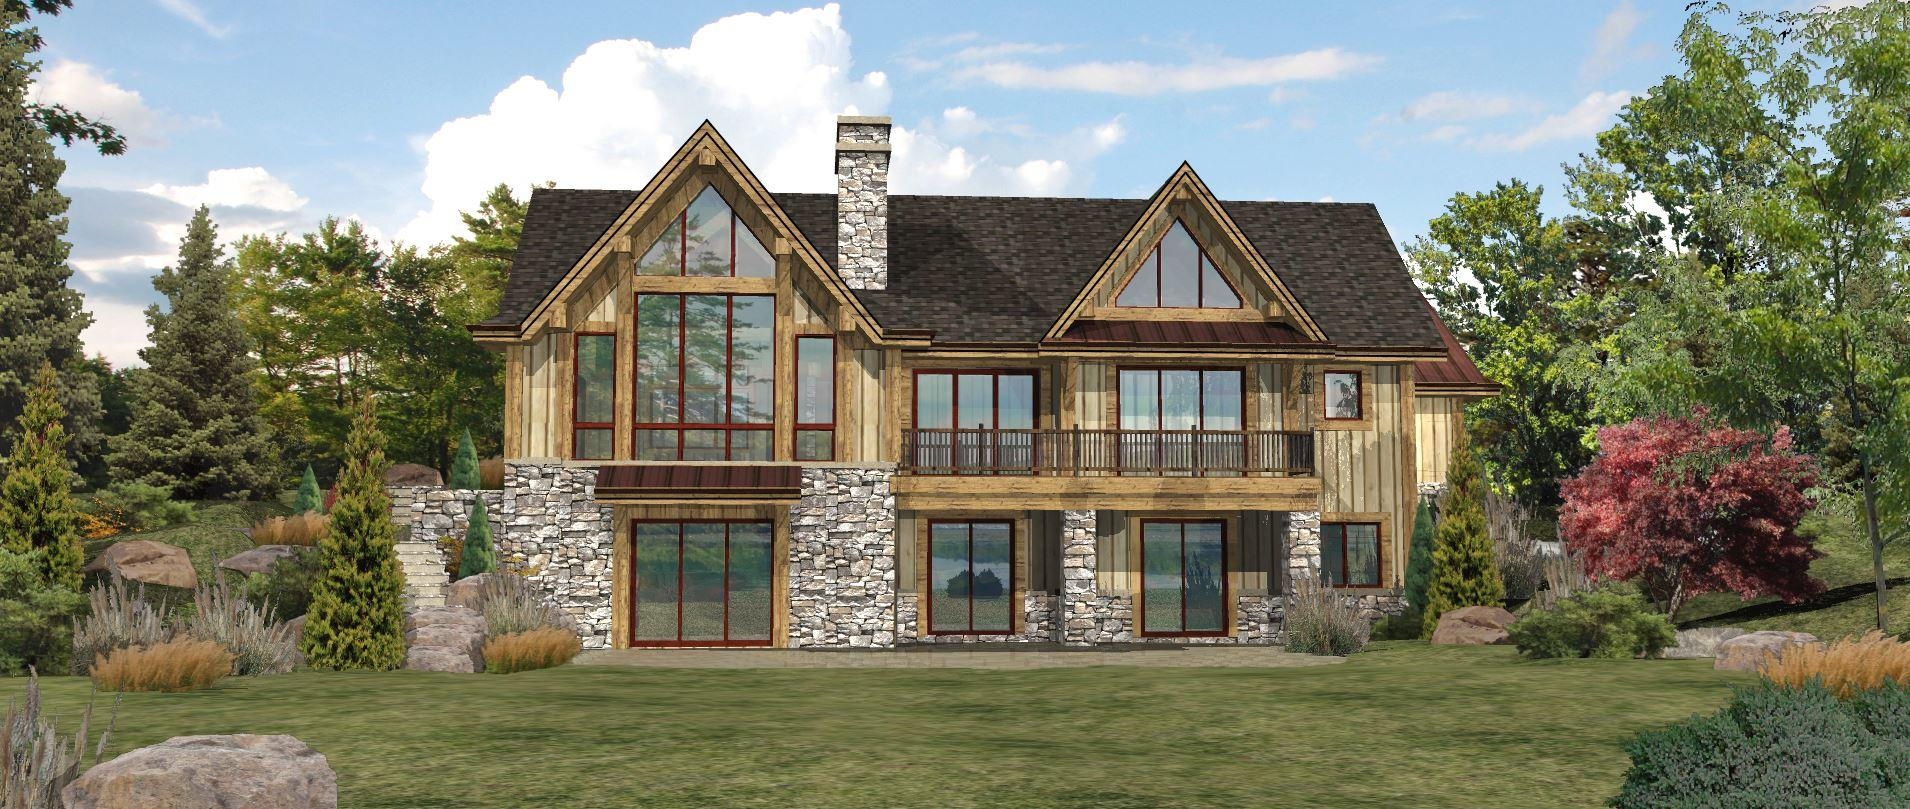 Lakefront - Rear Rendering by Wisconsin Log Homes 3